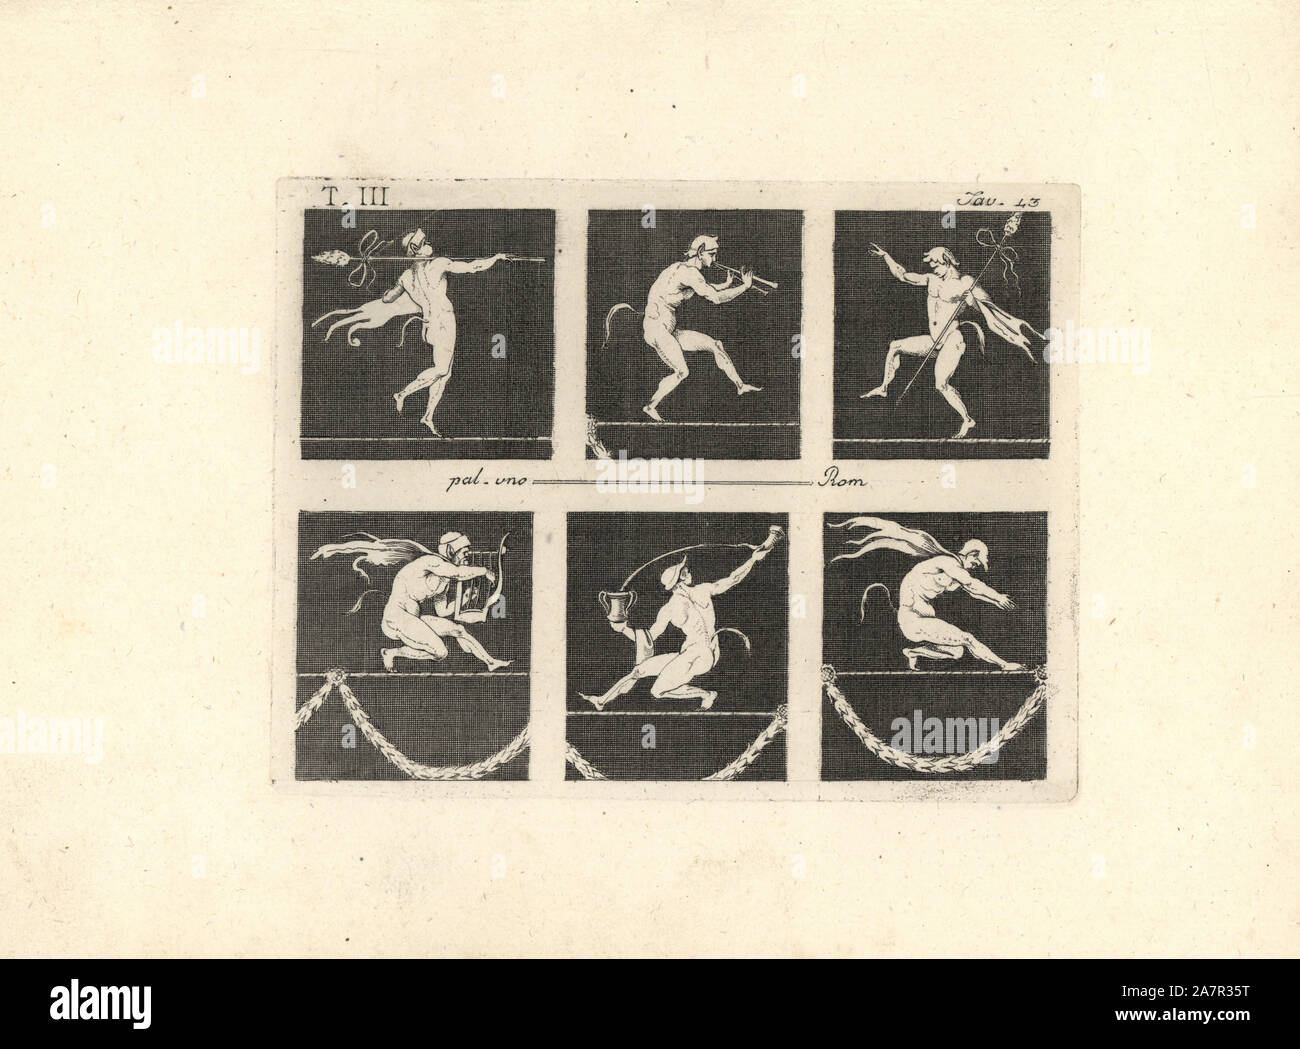 Six satyrs or fauns performing on a tightrope. Two carry a thyrsus, one plays a tibia, one plays a lyre, one pours wine from one vase to another, and one balances with his hands together. Copperplate engraving by Tommaso Piroli from his Antiquities of Herculaneum (Antichita di Ercolano), Rome, 1790. Stock Photo